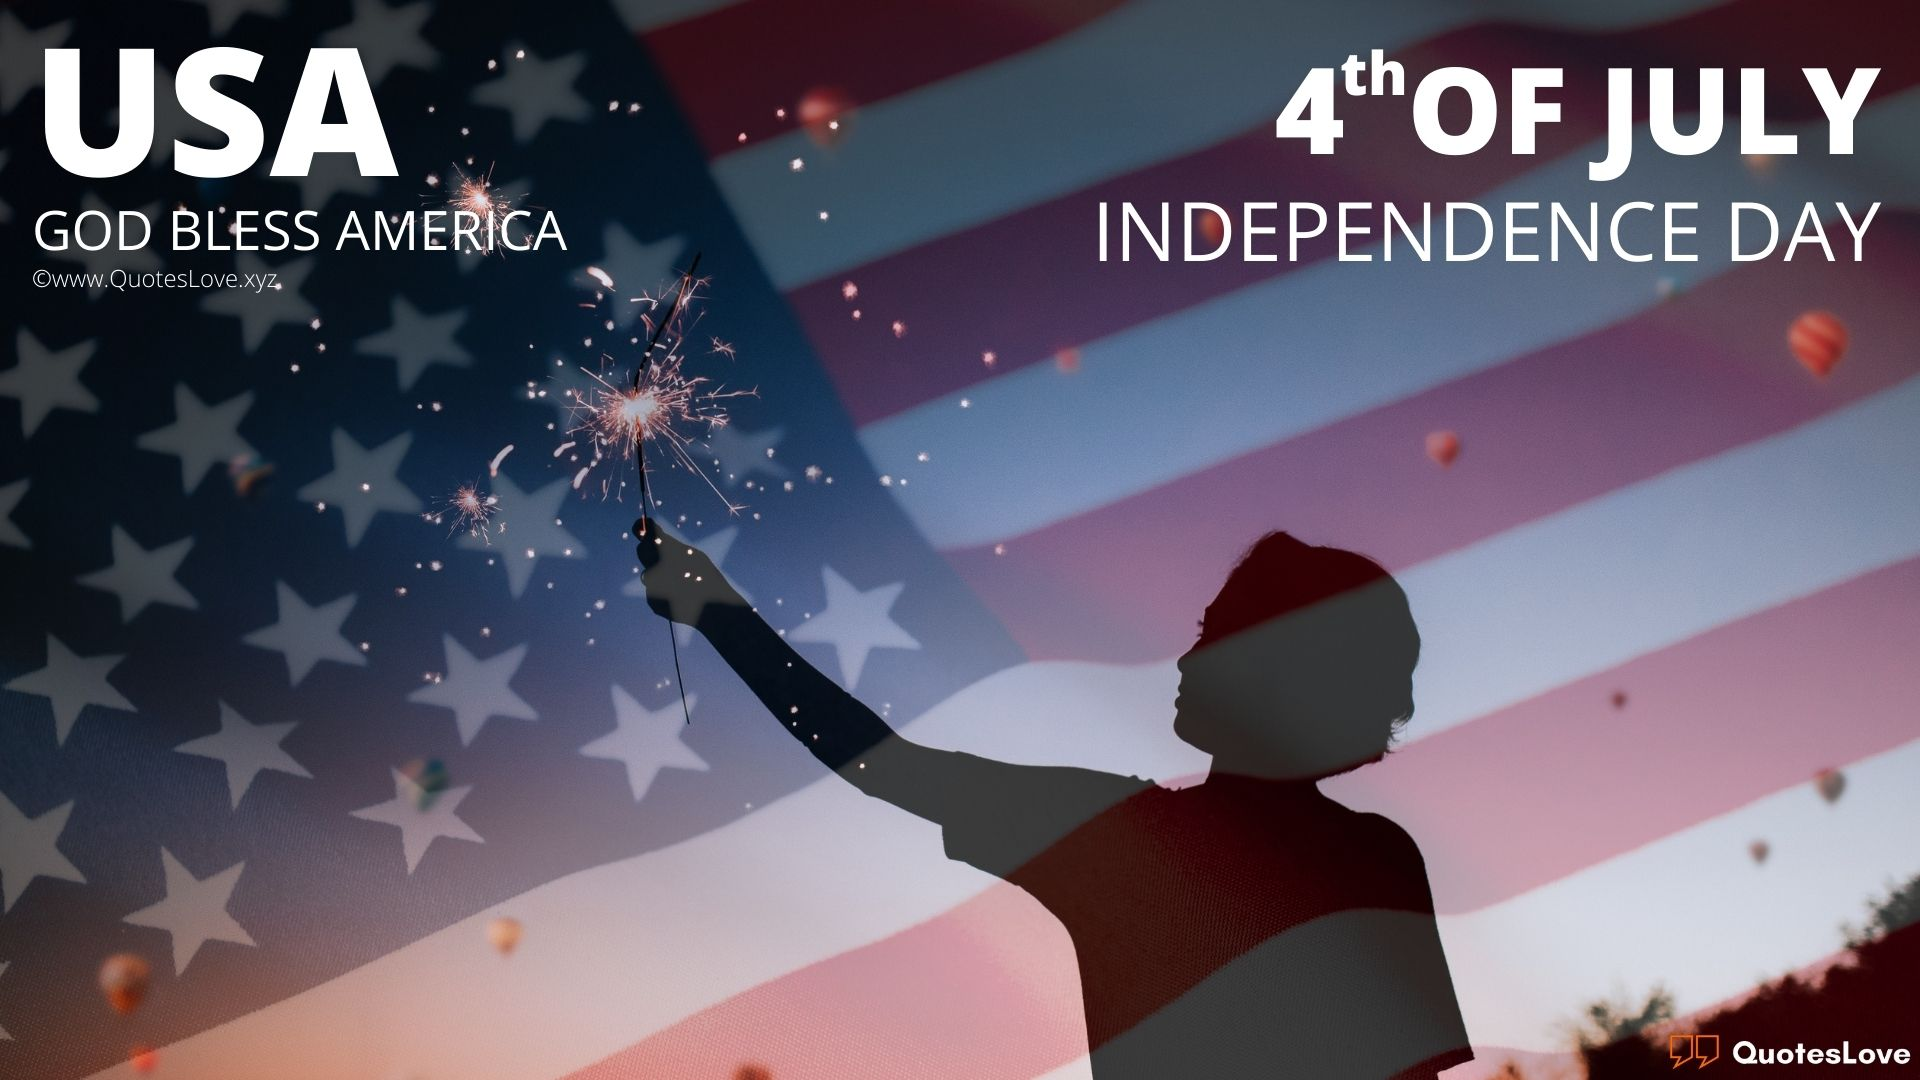 4th Of July Quotes, Wishes, Greetings, Messages, One Liners, Images, Pictures, Photos